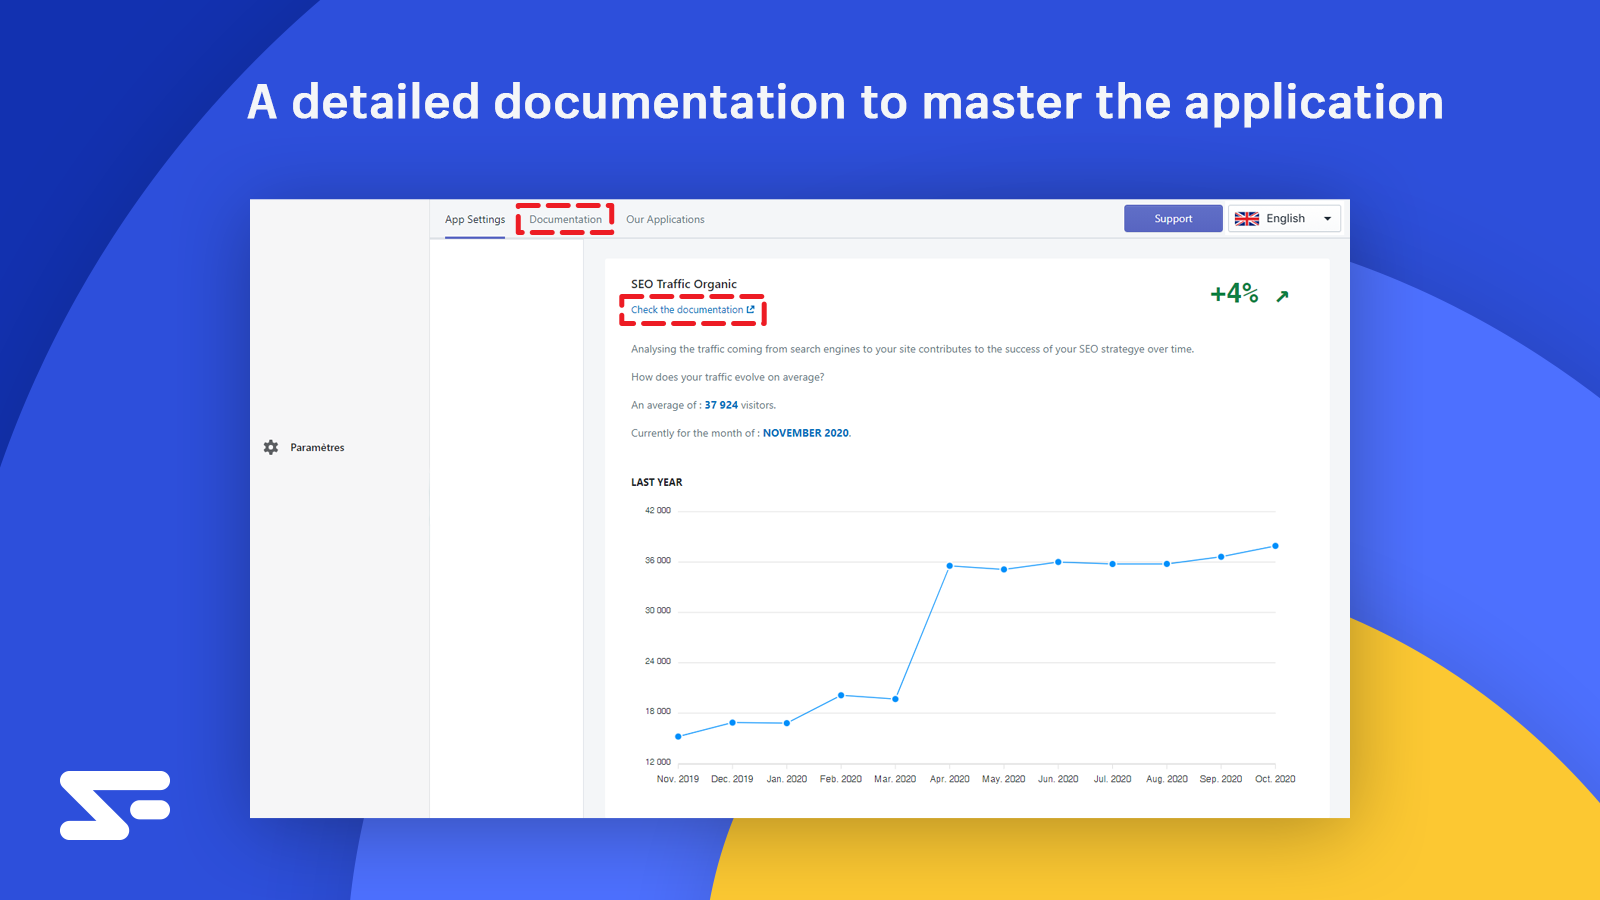 A detailed documentation to master the application